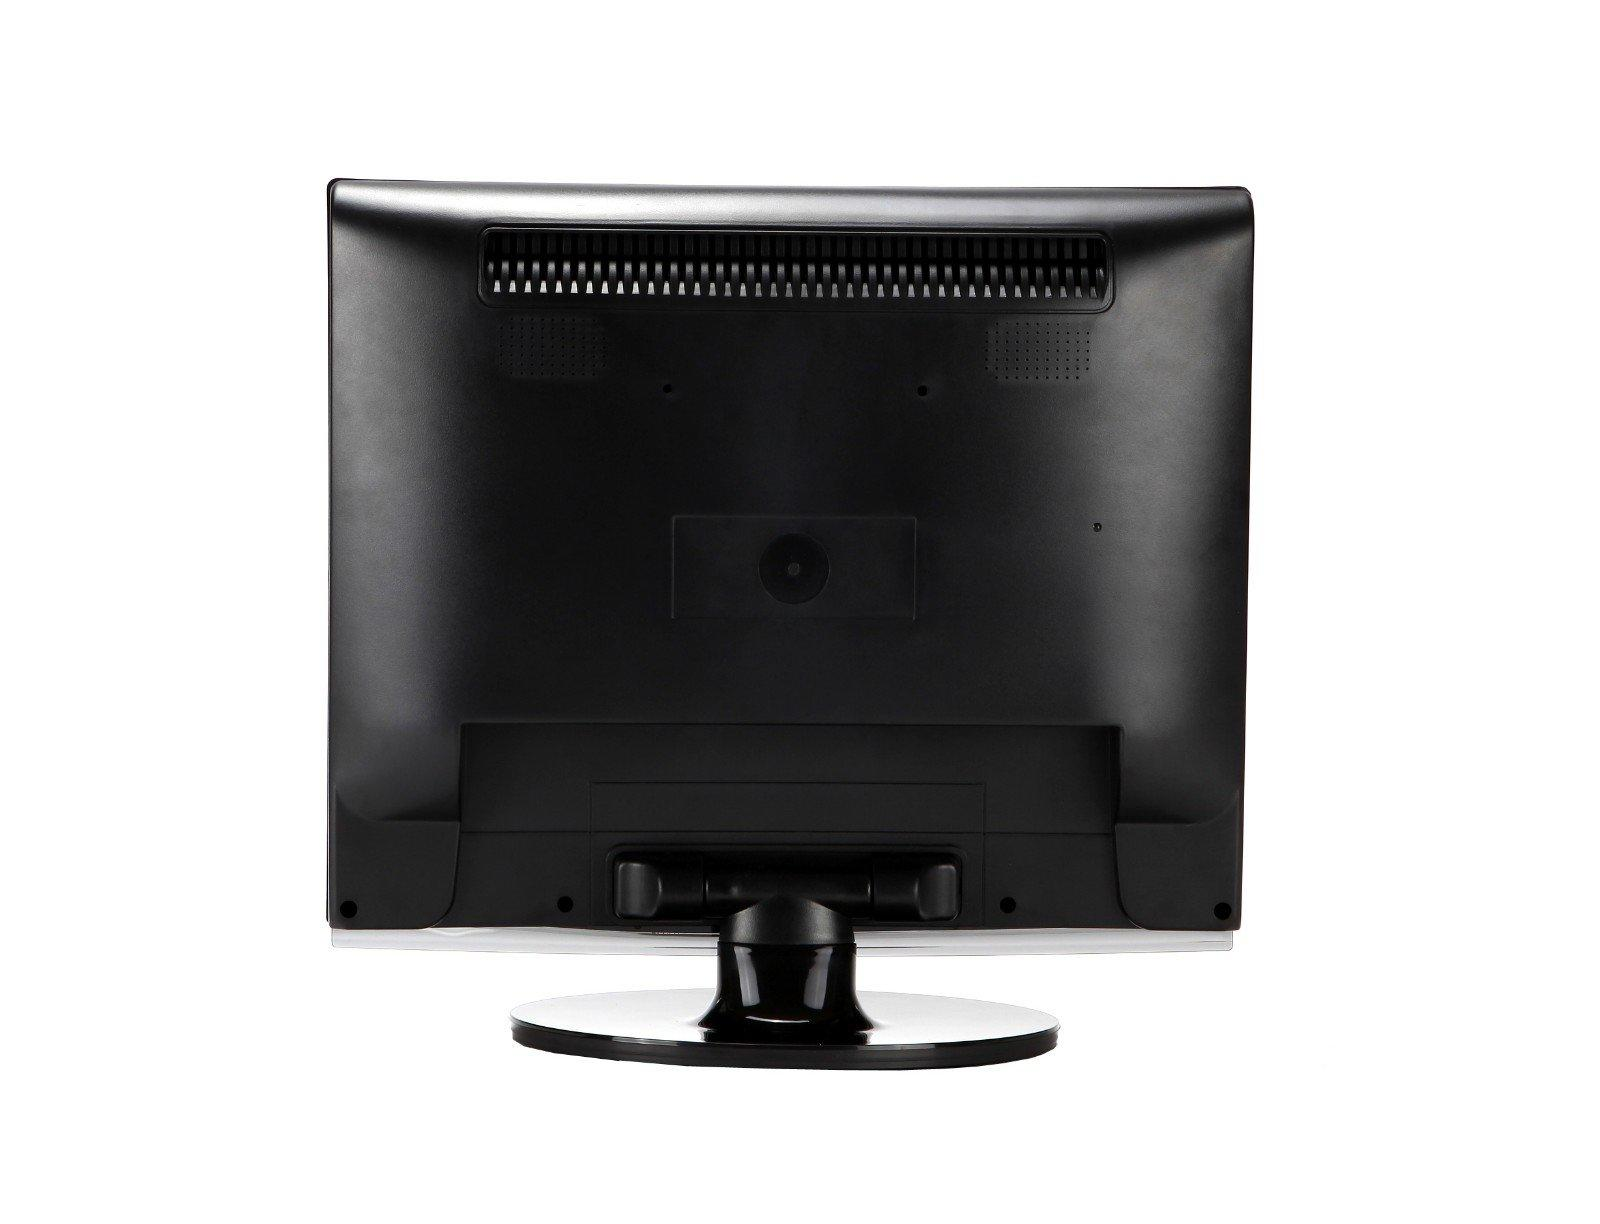 hand laptop x21 professional 15 tft lcd monitor Xinyao LCD Brand